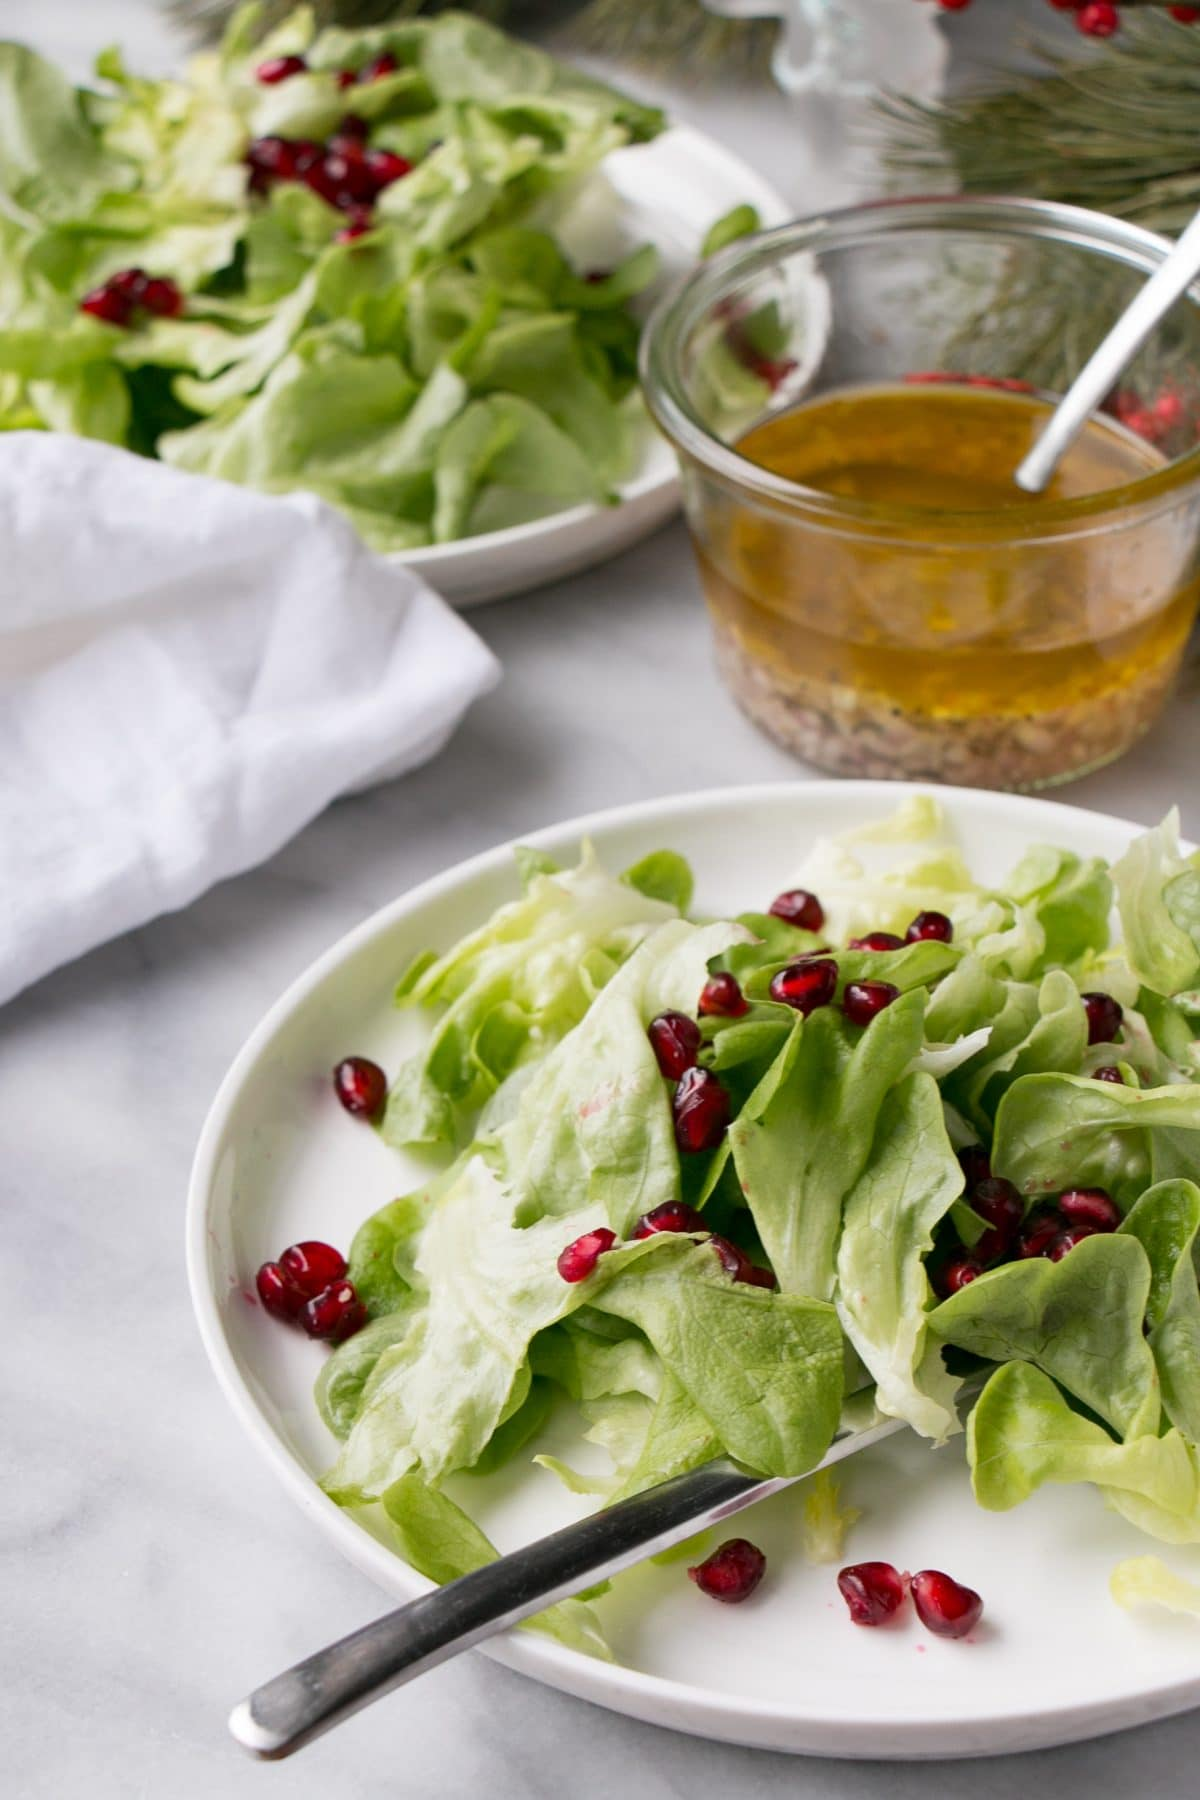 5 ingredient christmas salad for al the potlucks and a little good health during the holidays